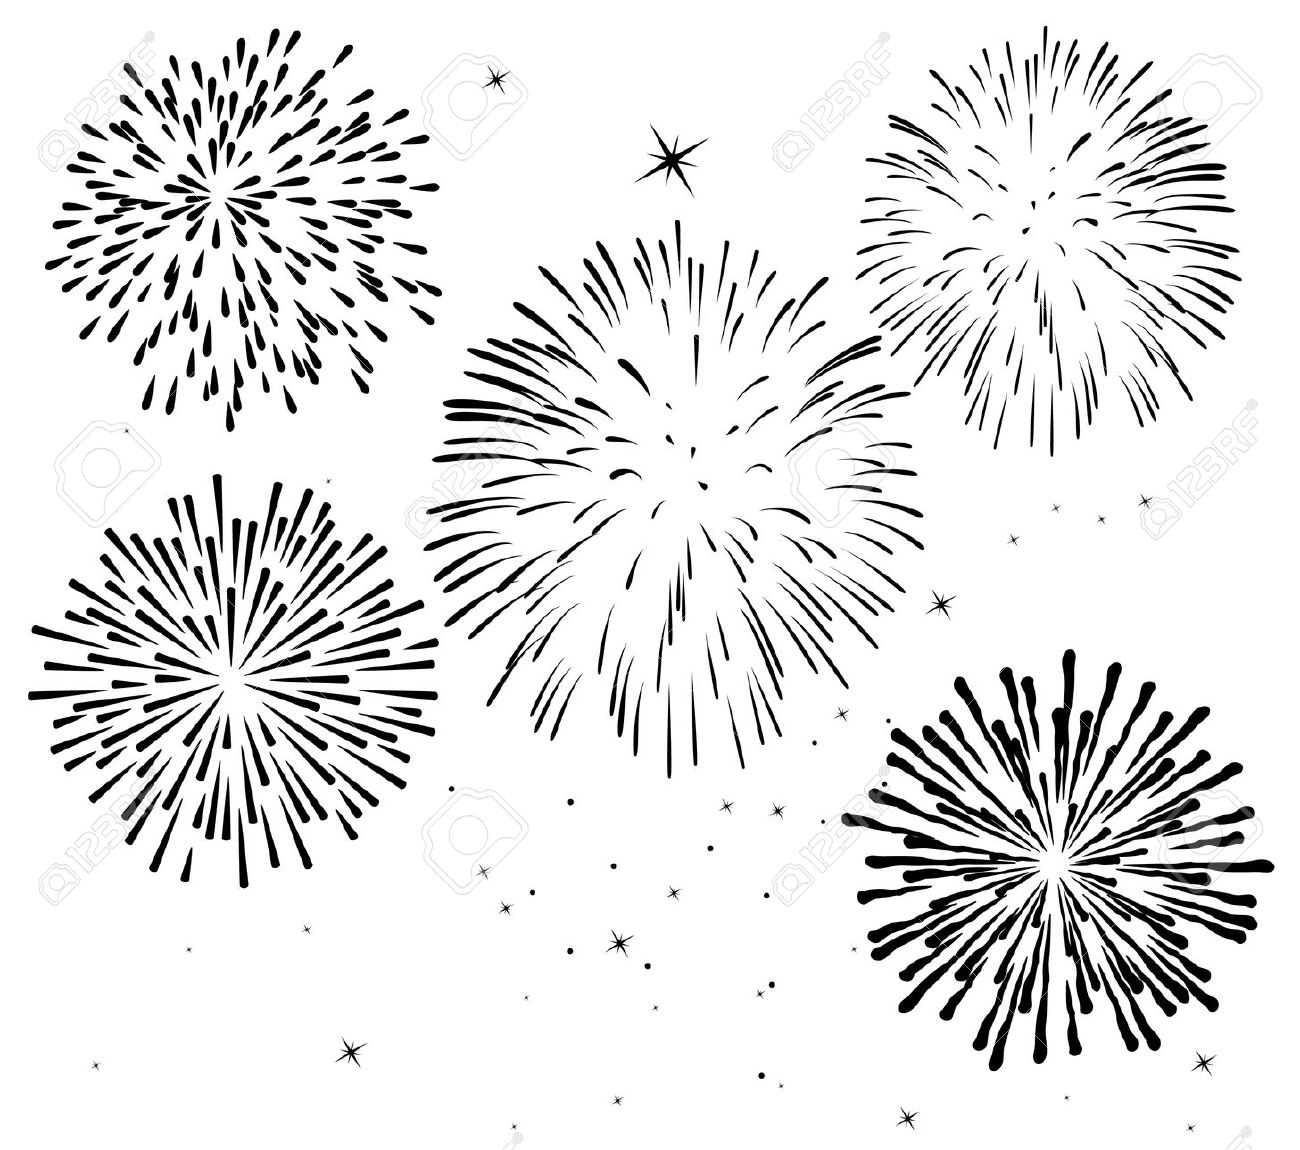 hight resolution of black and white fireworks